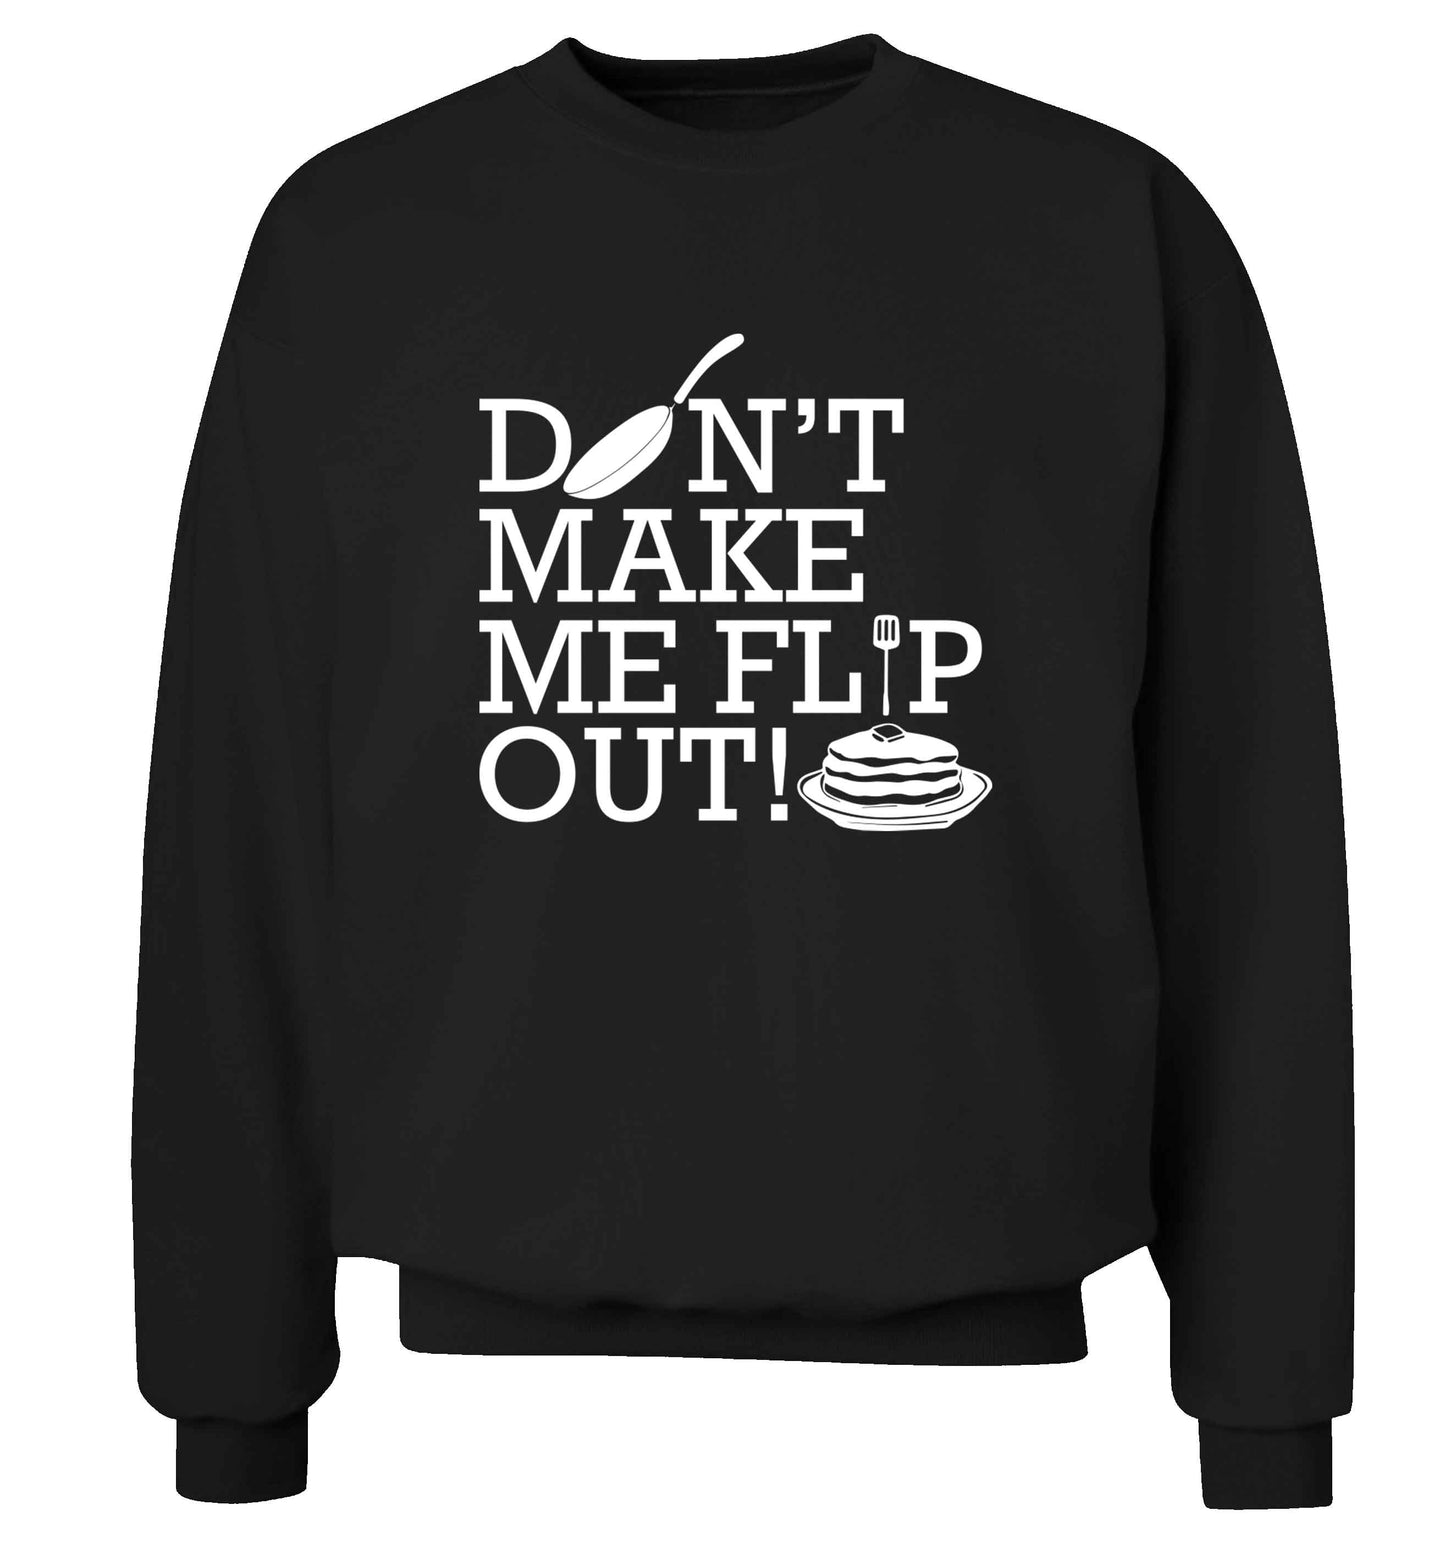 Don't make me flip out adult's unisex black sweater 2XL